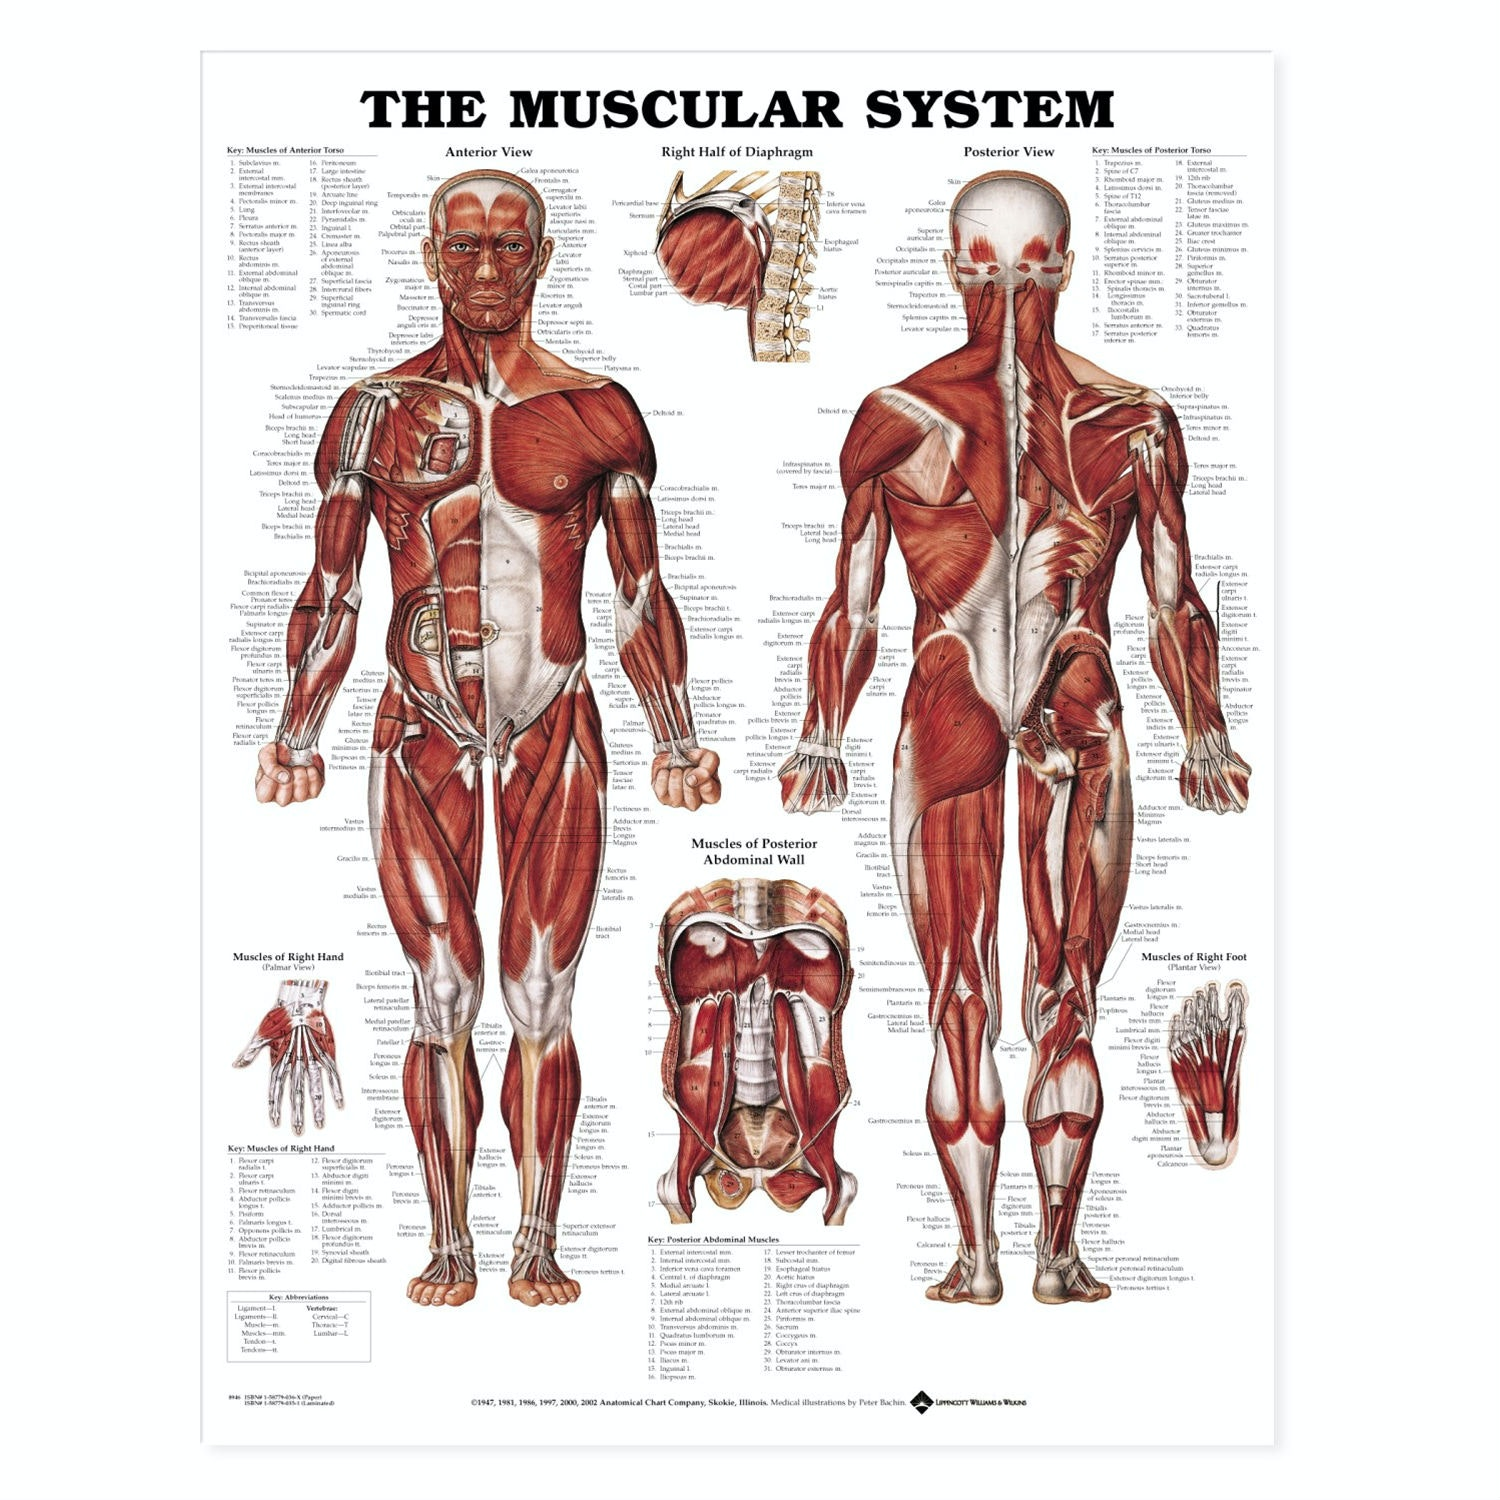 Muskelsystemet lamineret plakat engelsk (The muscular system)